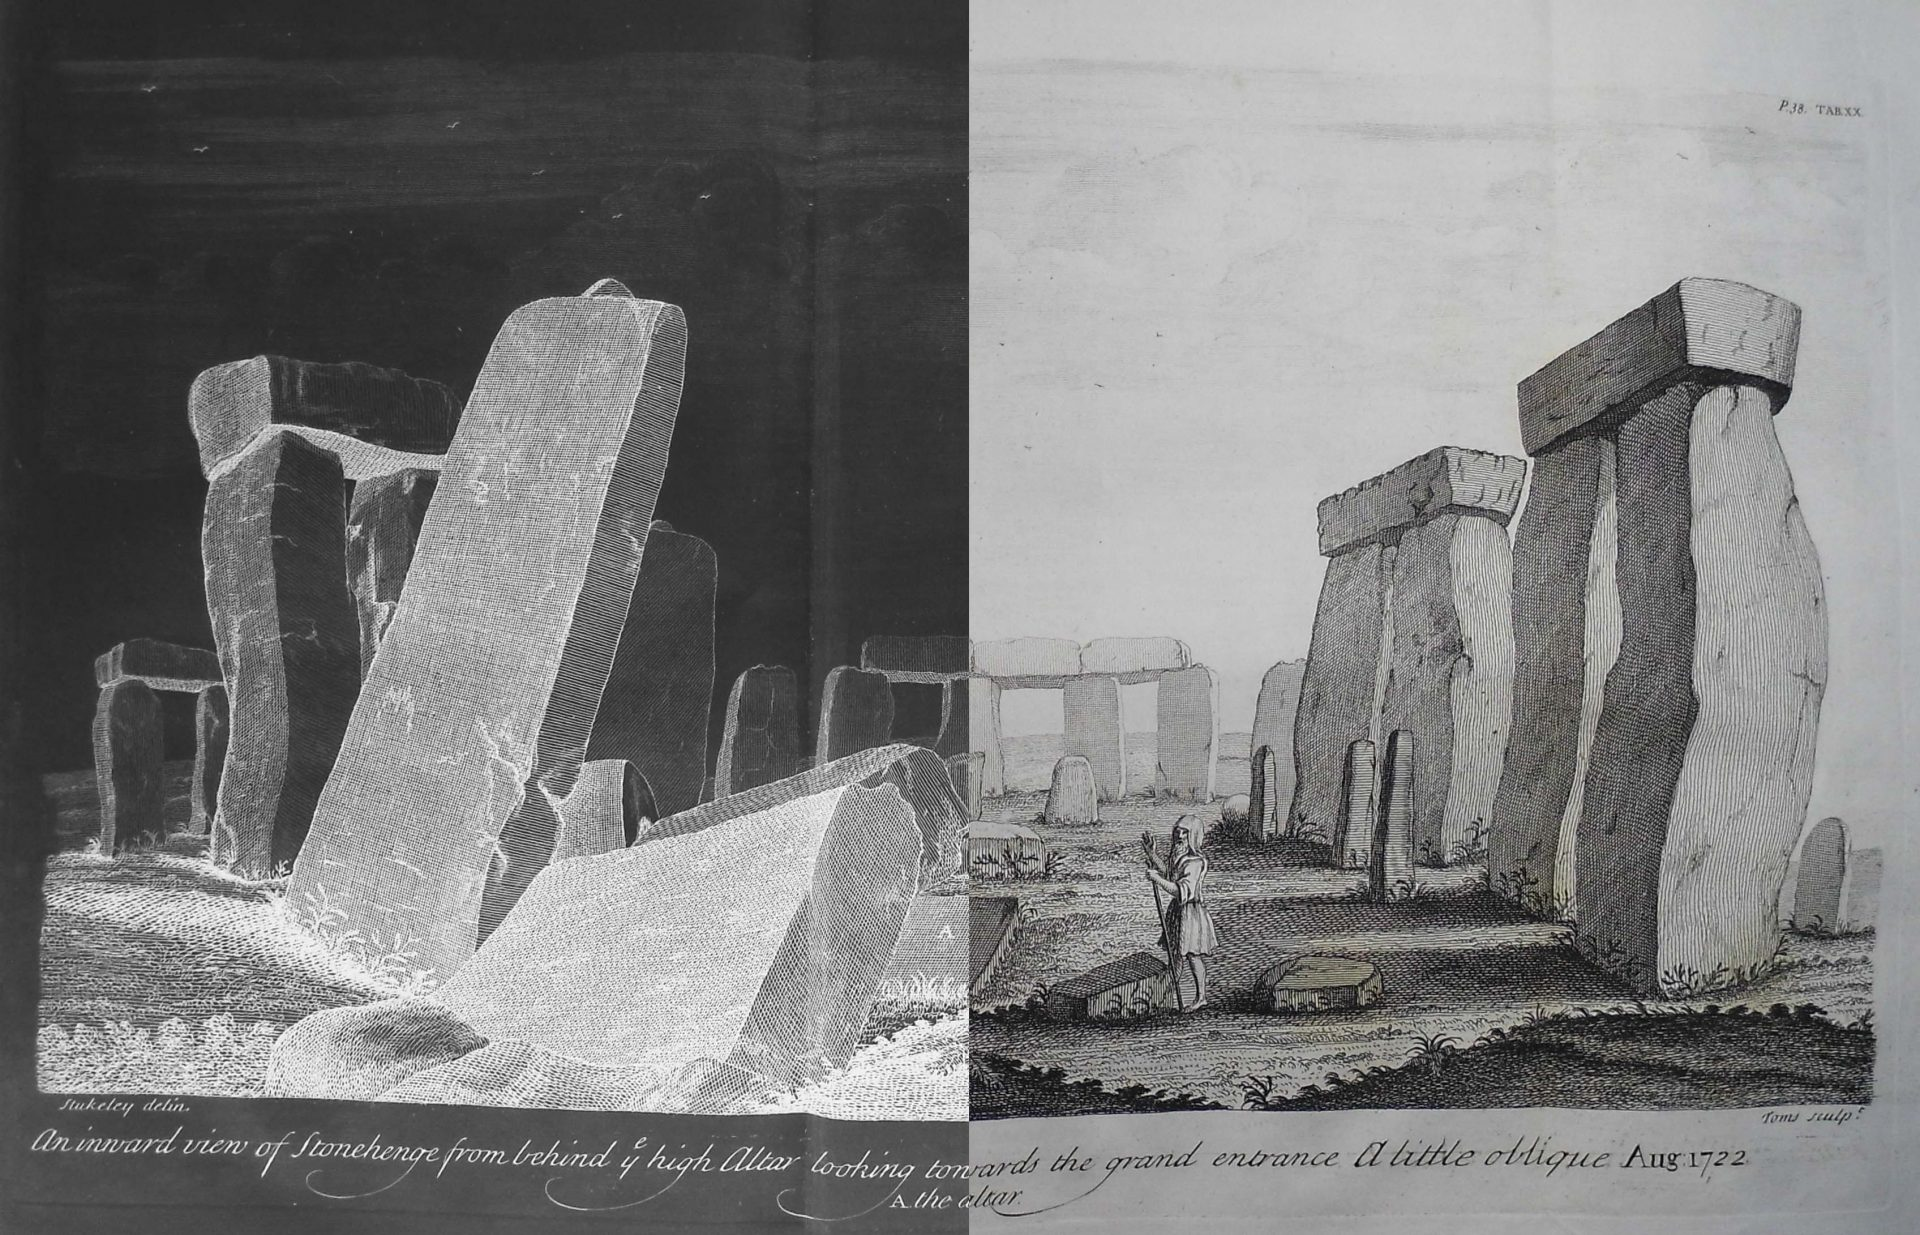 Summer Solstice past: The Rite of the 13 Megaliths